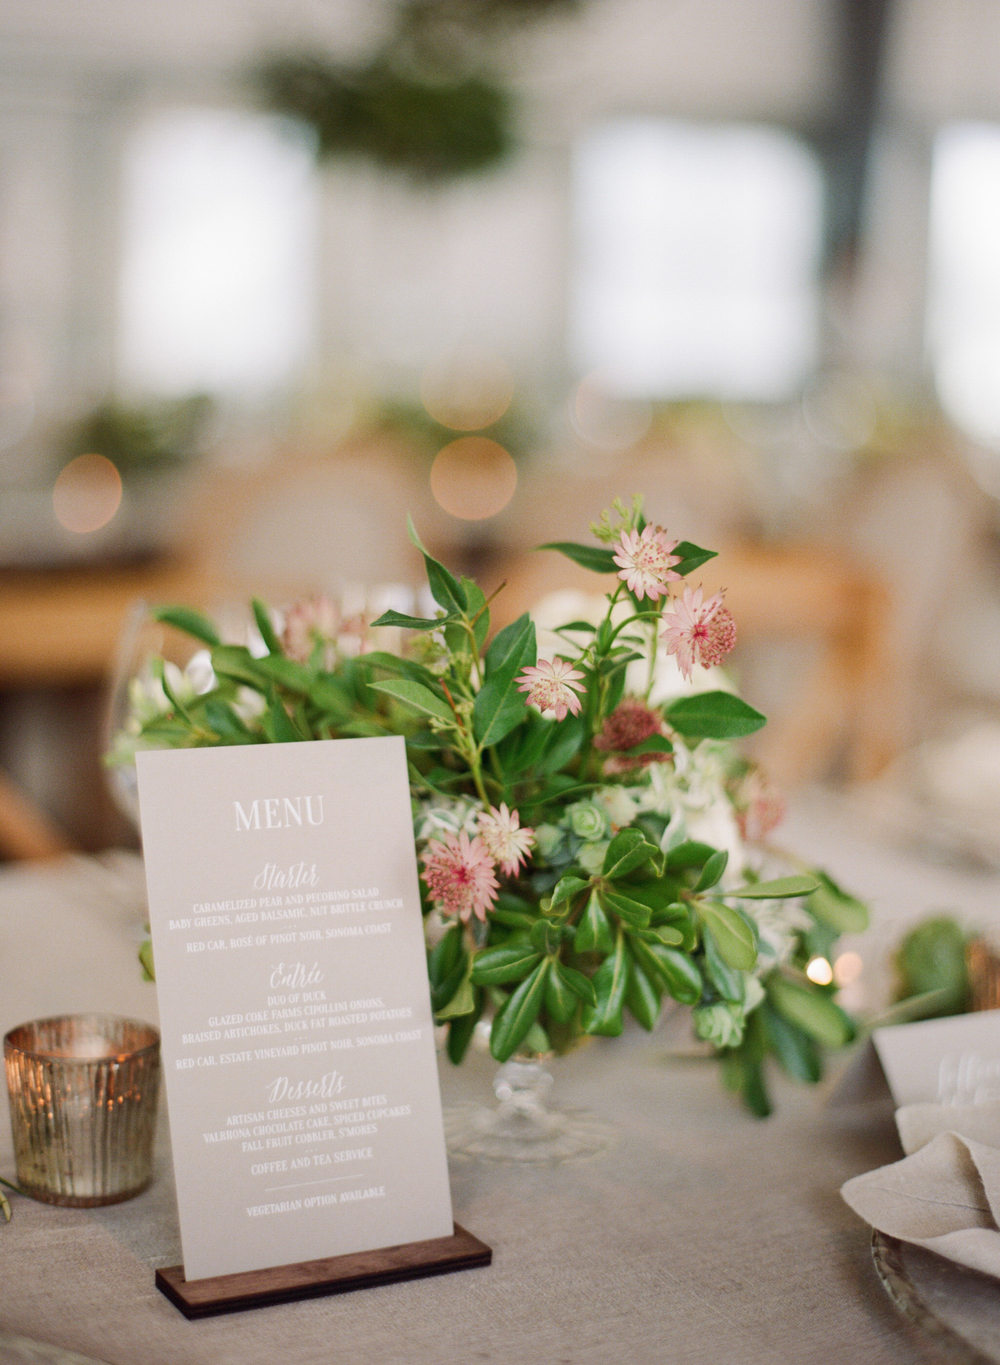 SylvieGil-Durham-Ranch-Organic-Ethereal-Rustic-Menu-Reception-Wedding